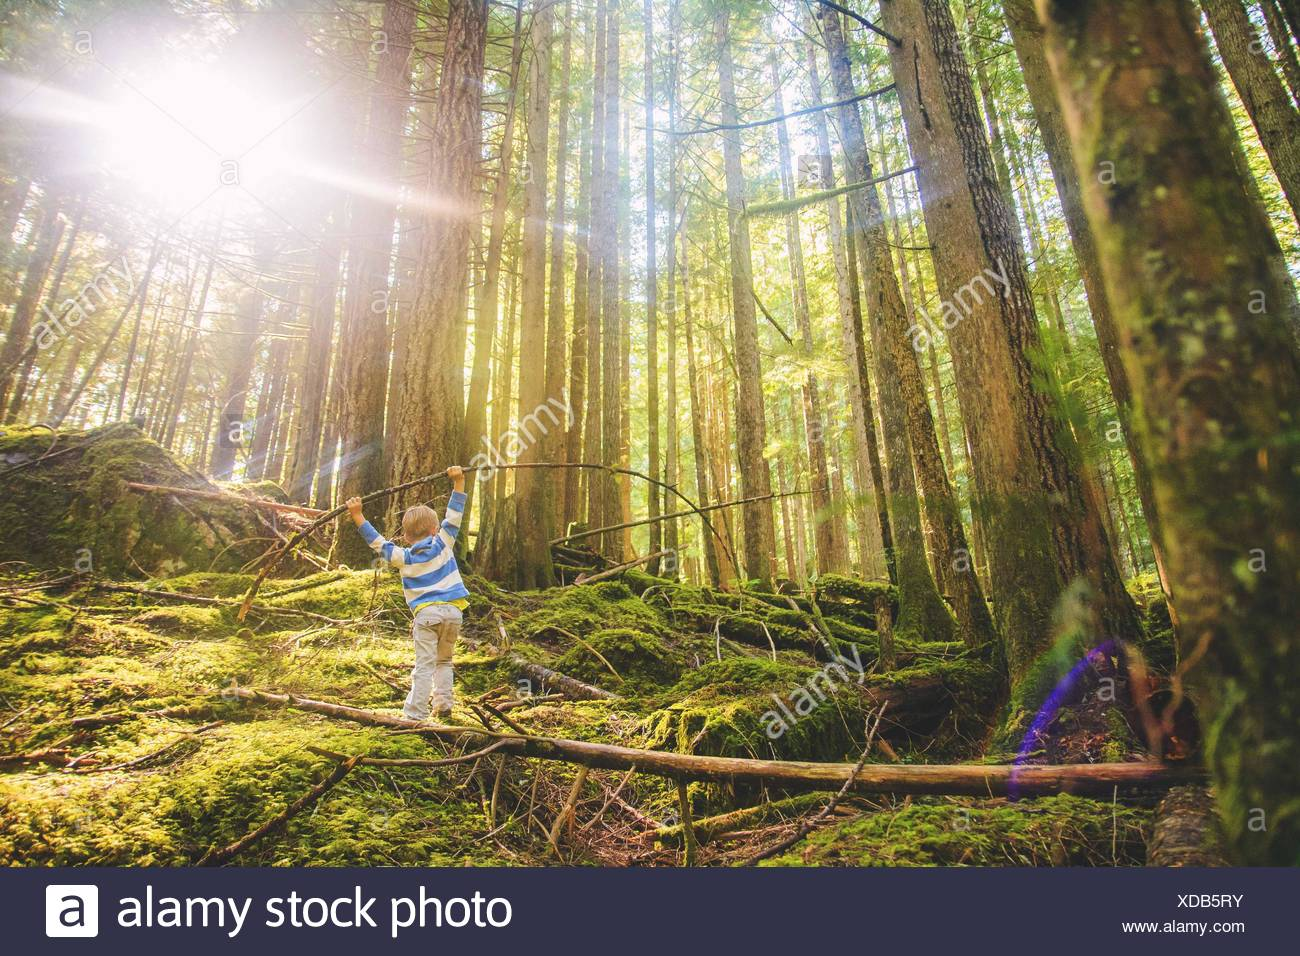 Young boy (4-5) balancing on log in forest - Stock Image